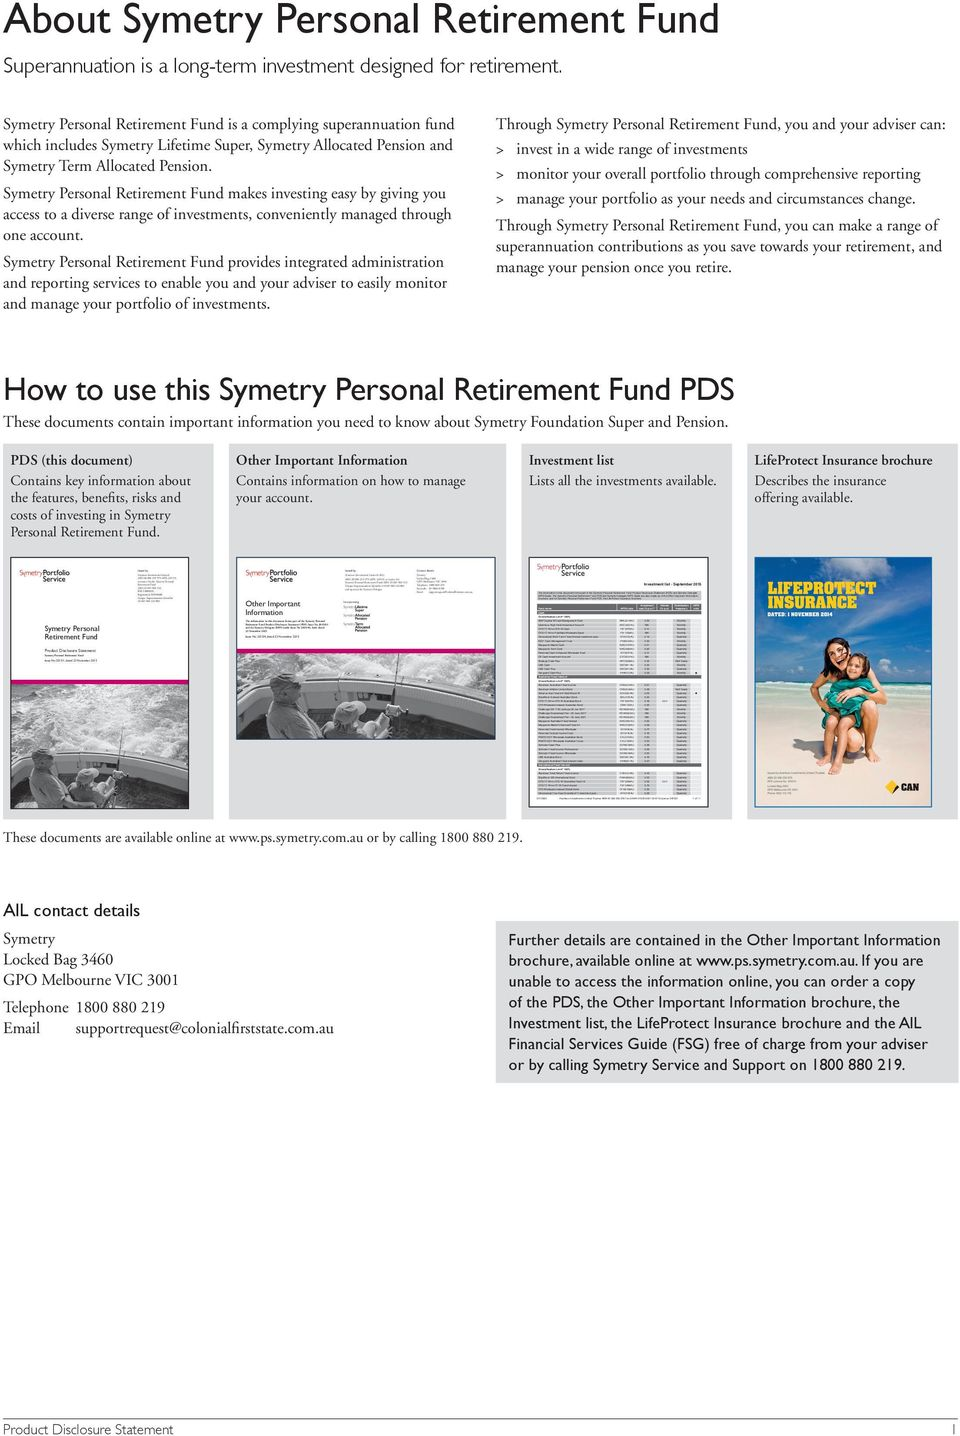 Product Disclosure Statement 1 The information in this document forms part of the Symetry Personal Retirement Fund Product Disclosure Statement (PDS) Issue No 2015/01 and the Symetry Delegate IDPS